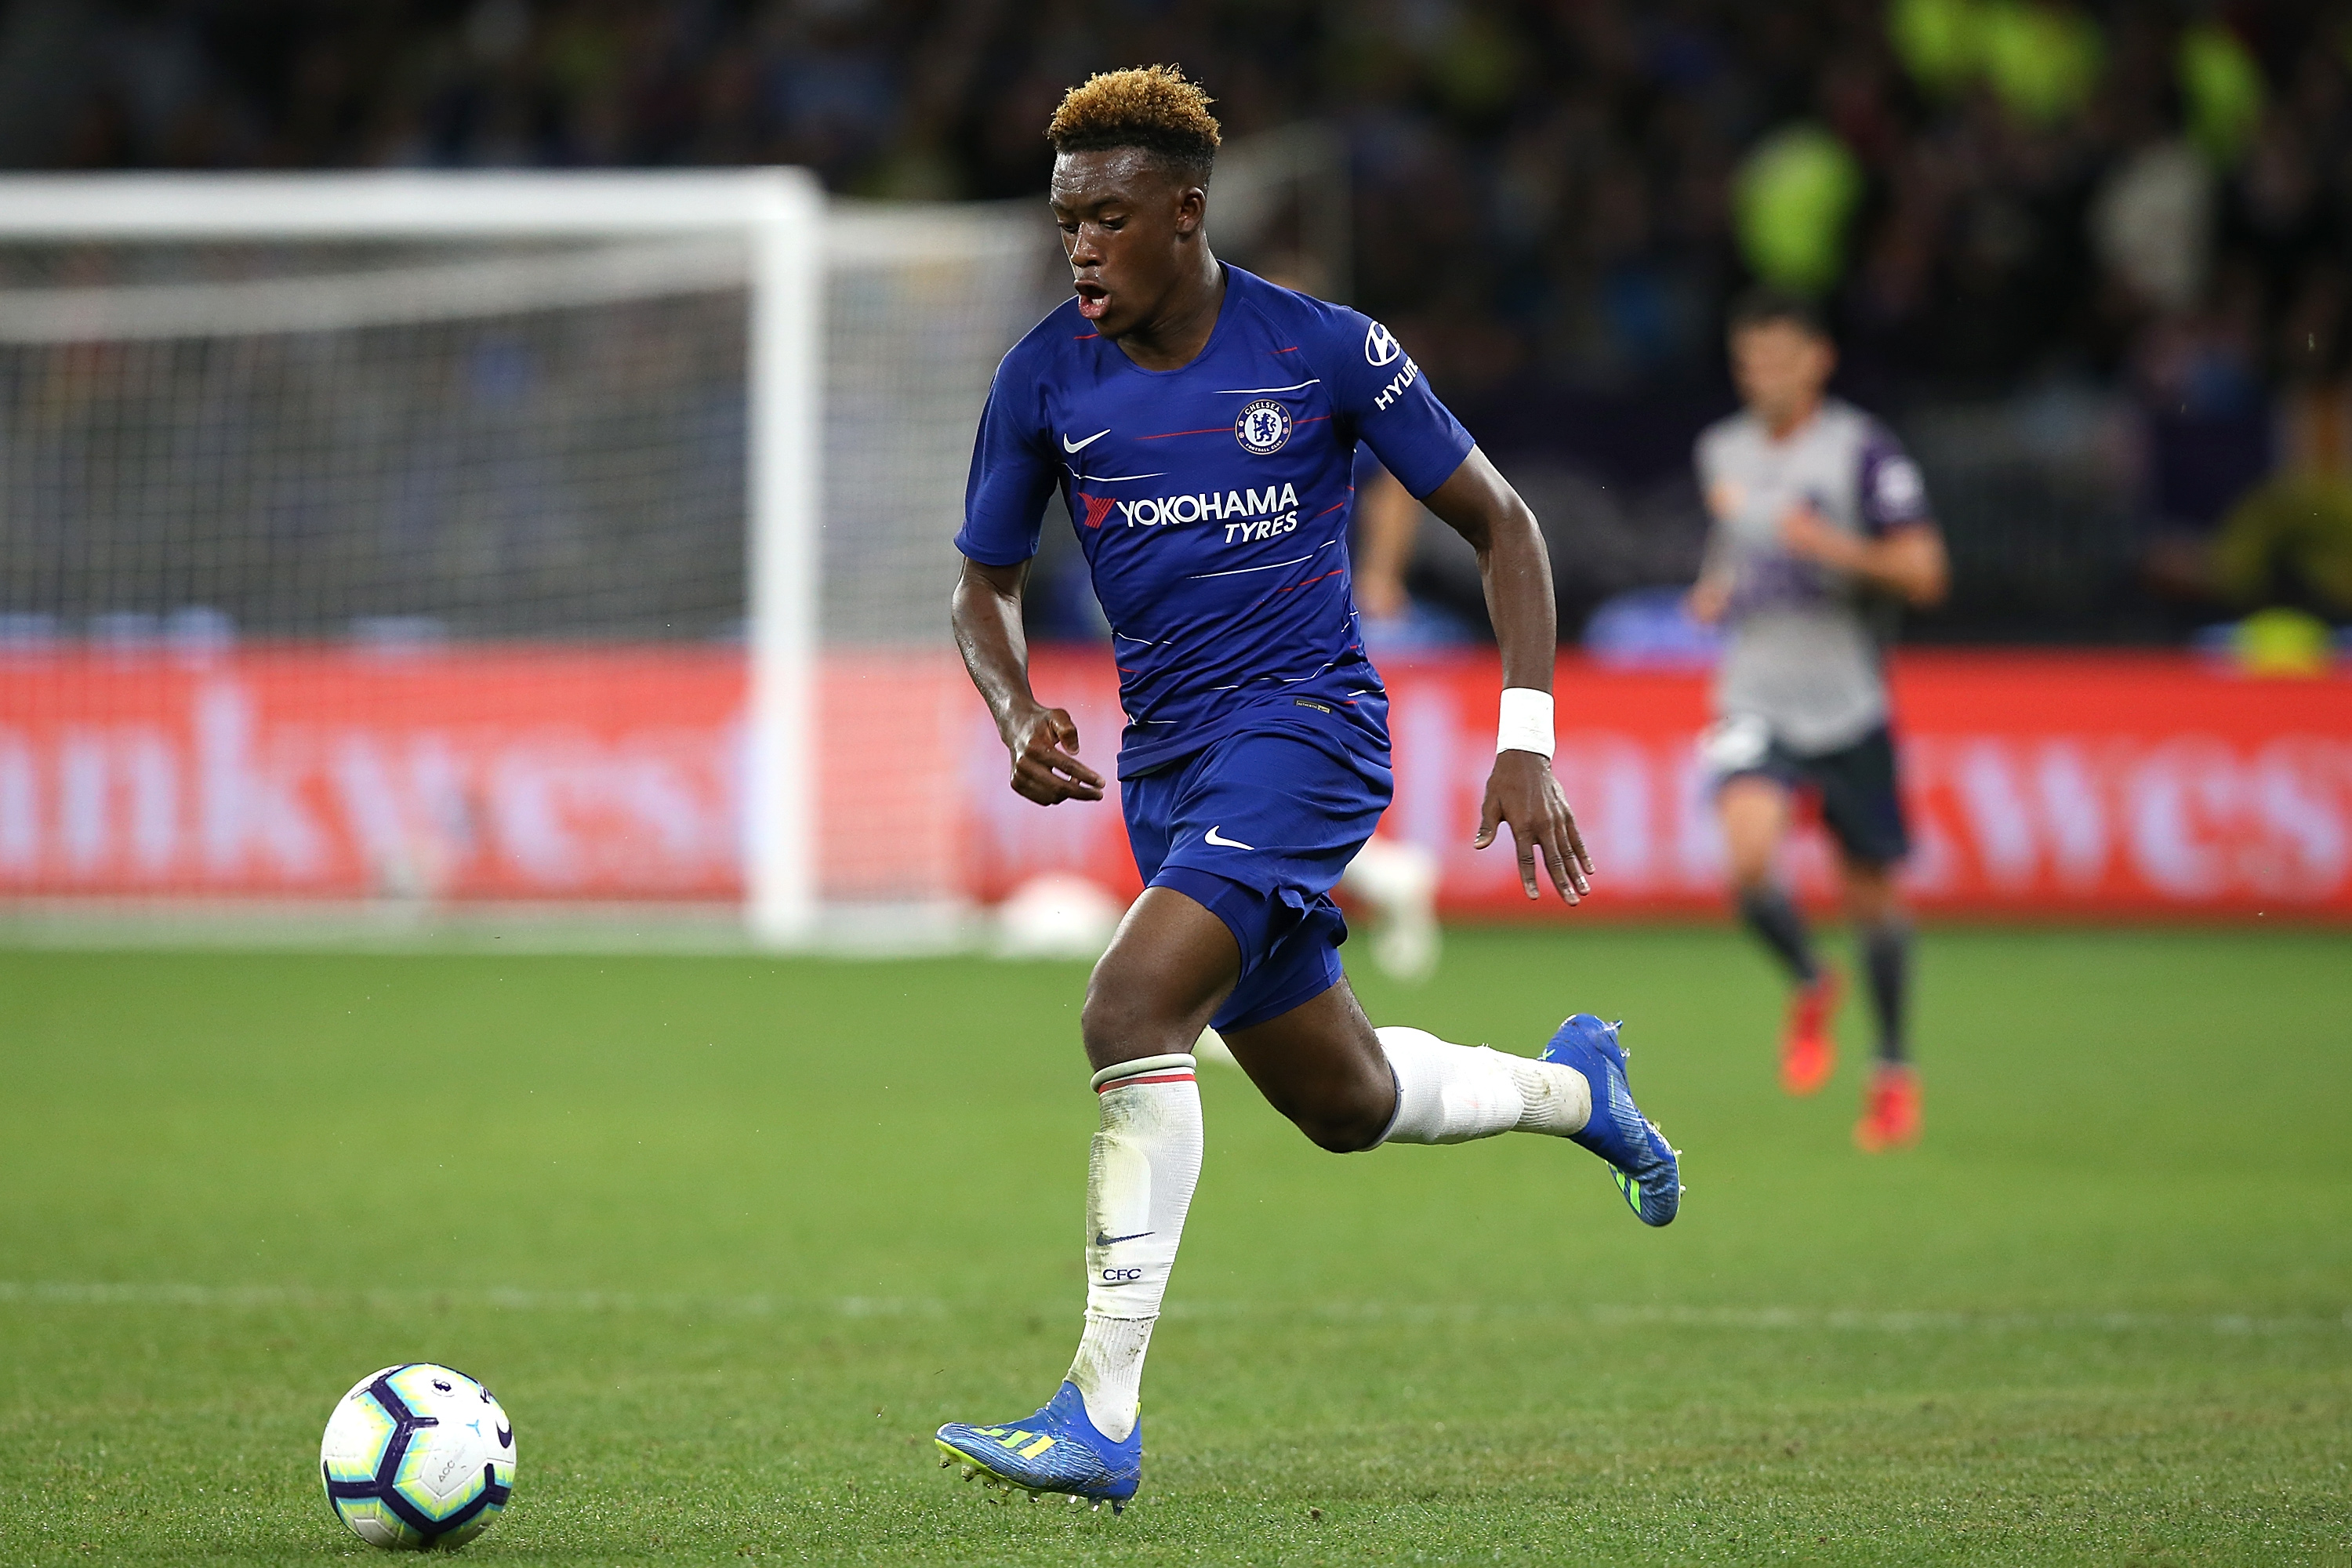 The youngster would be filling the void again created by he absence of key players from the squad. (Photo Courtesy- Paul Kane/Getty Images)